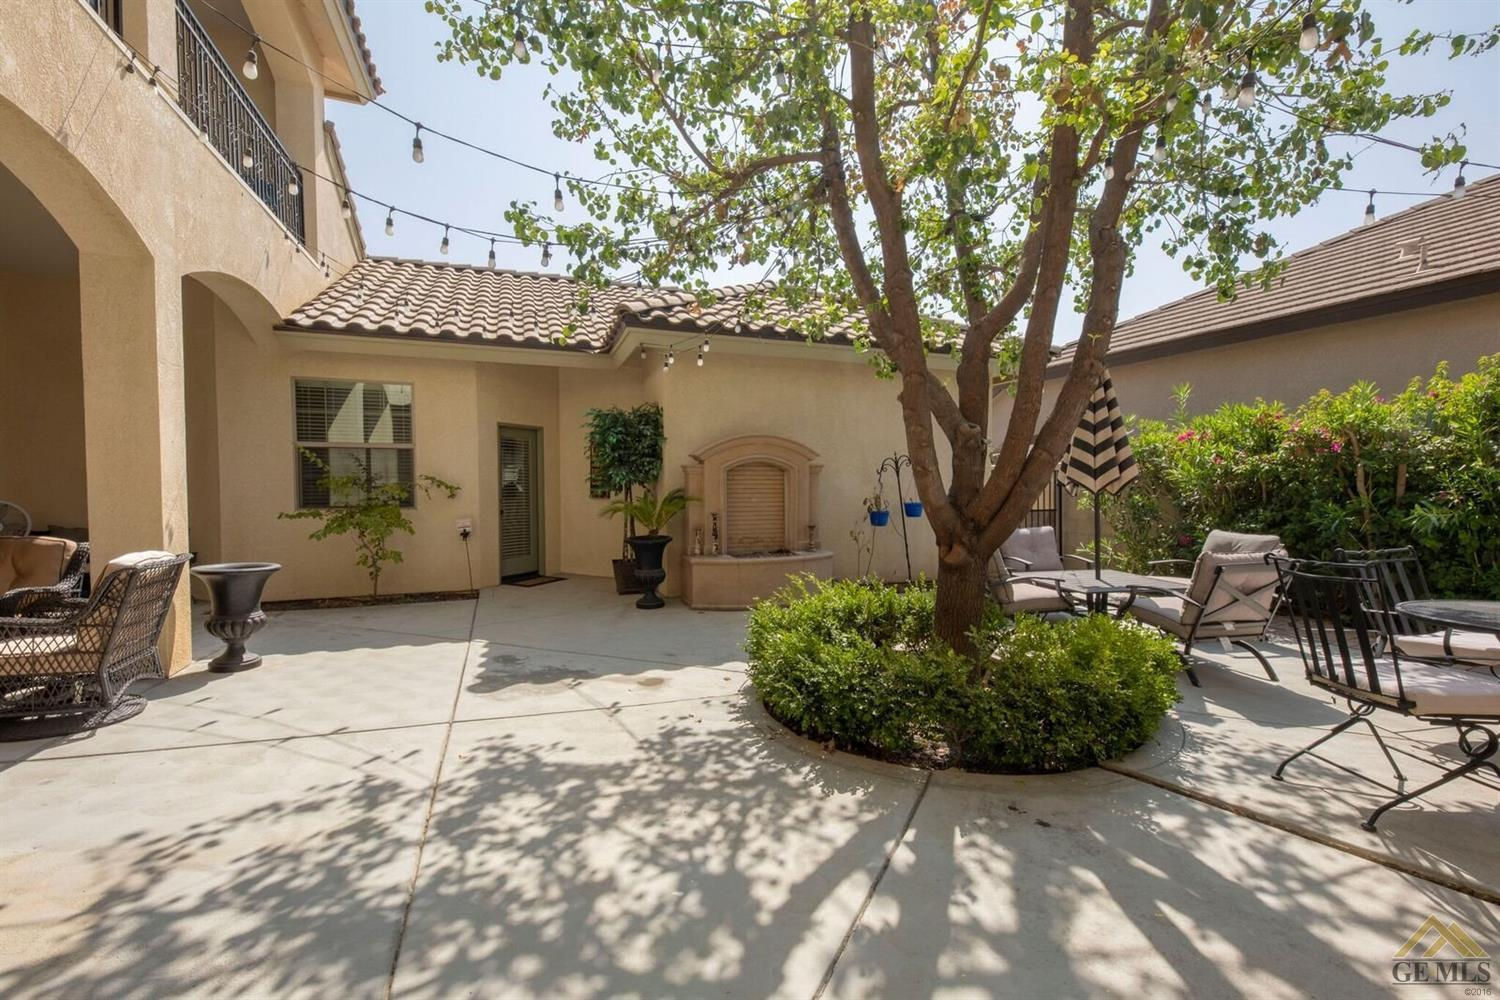 5 bed / 4 baths Home in Bakersfield for $499,900